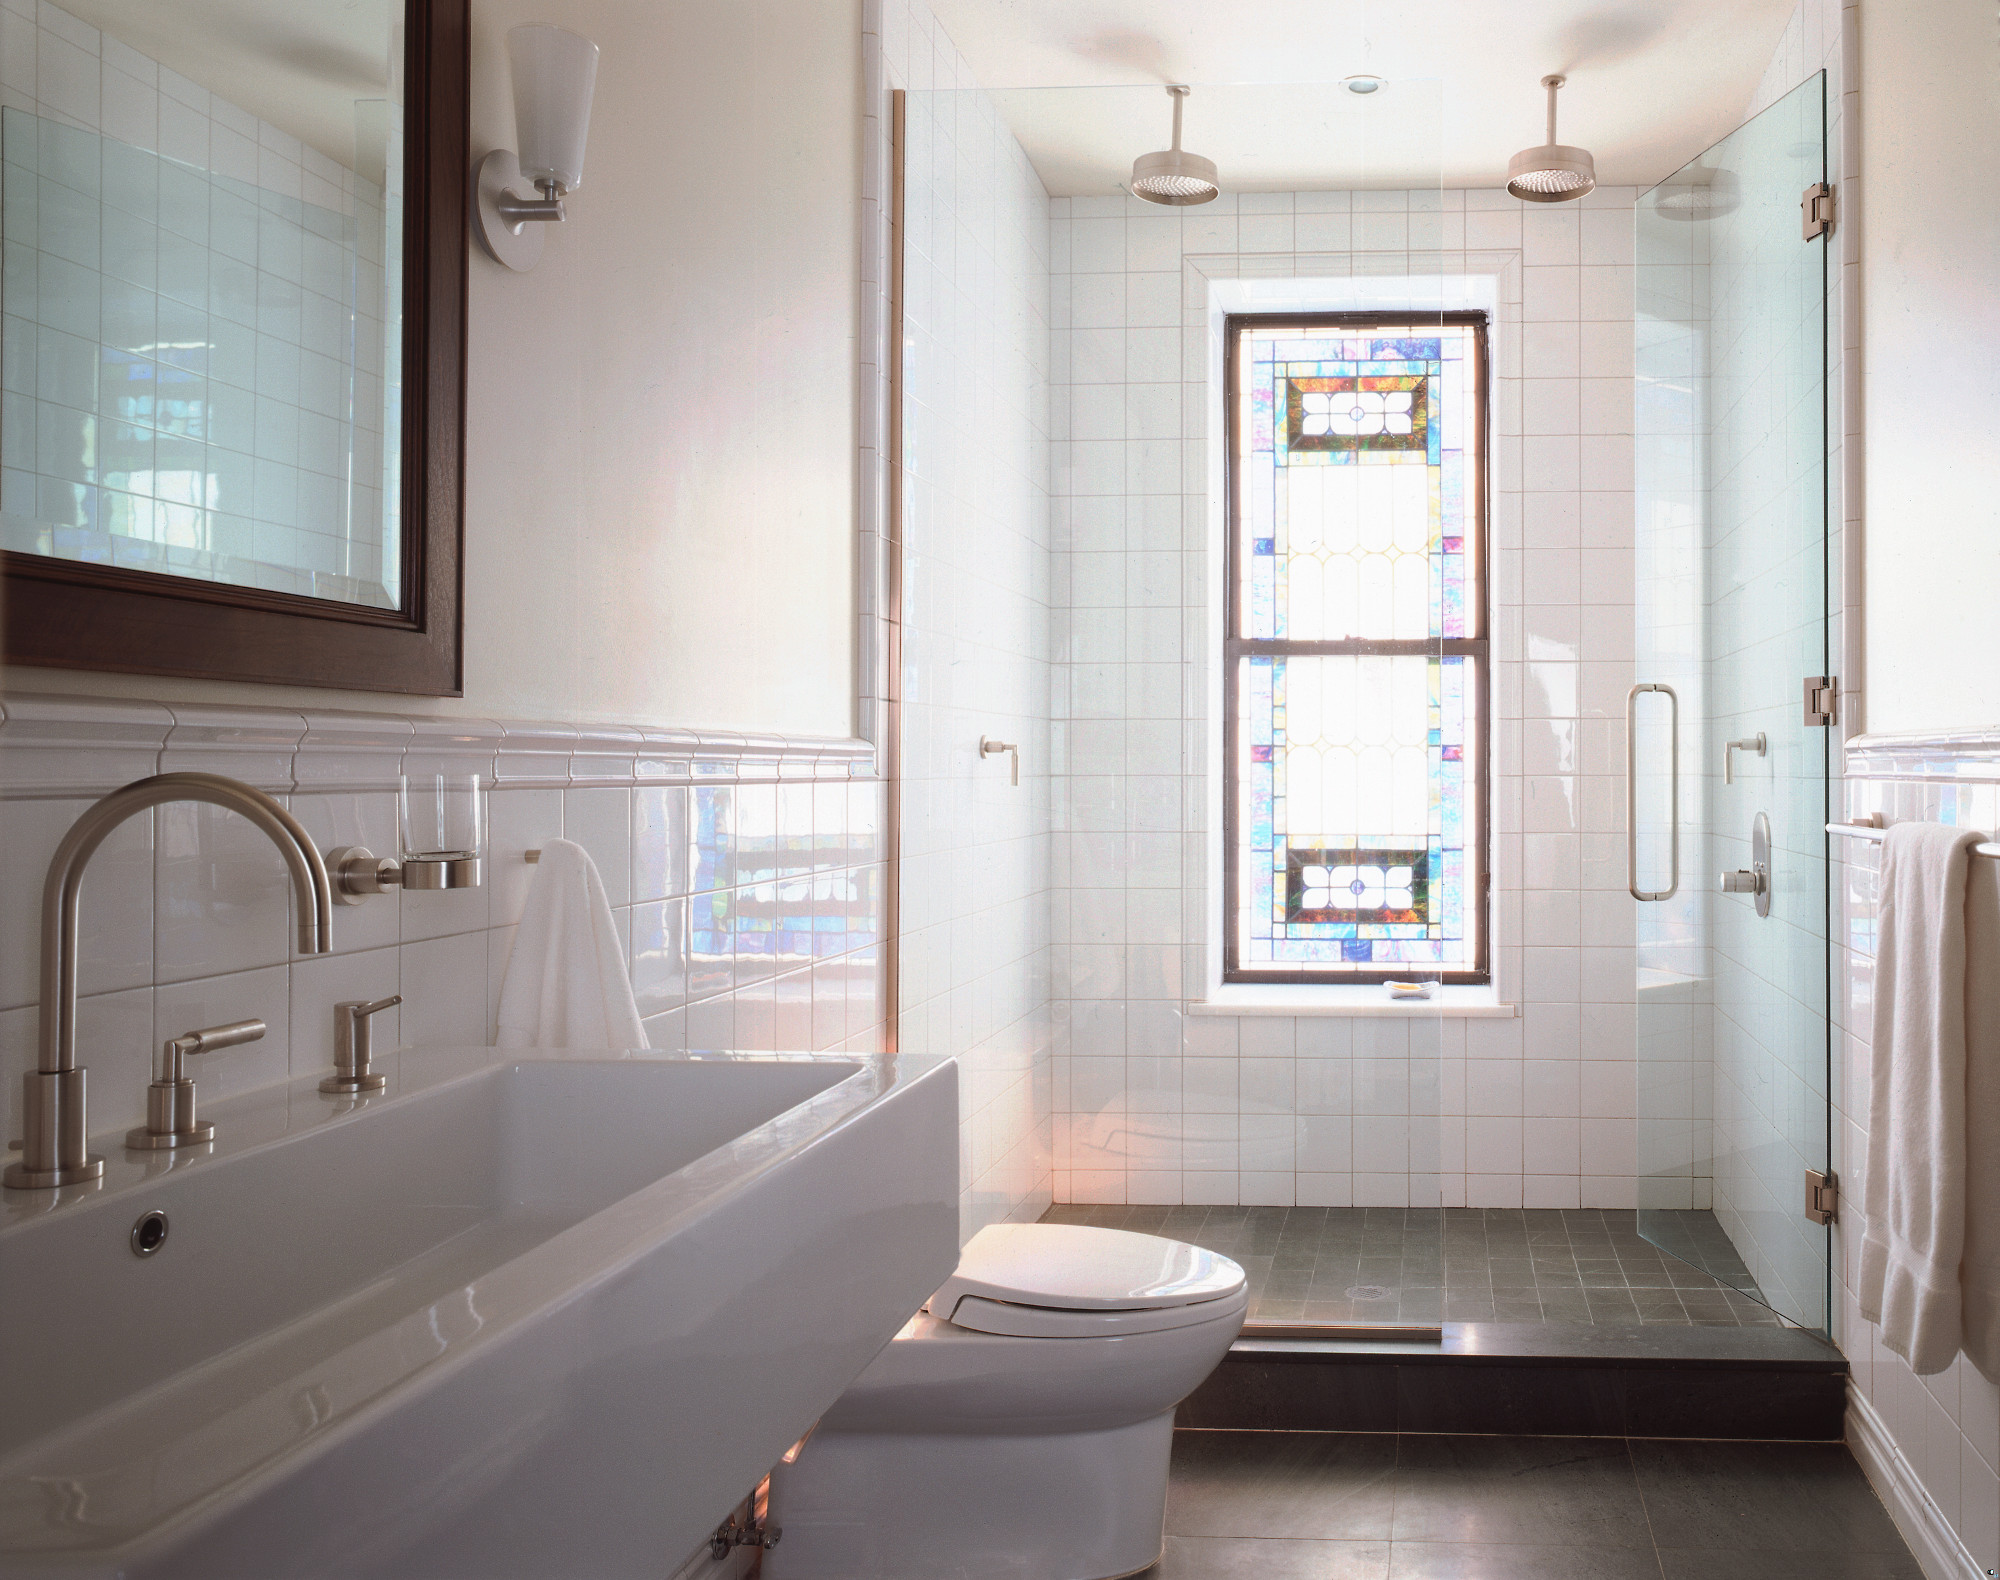 limestone house minimalist bathroom refurbished stained glass window brooklyn park slope architects